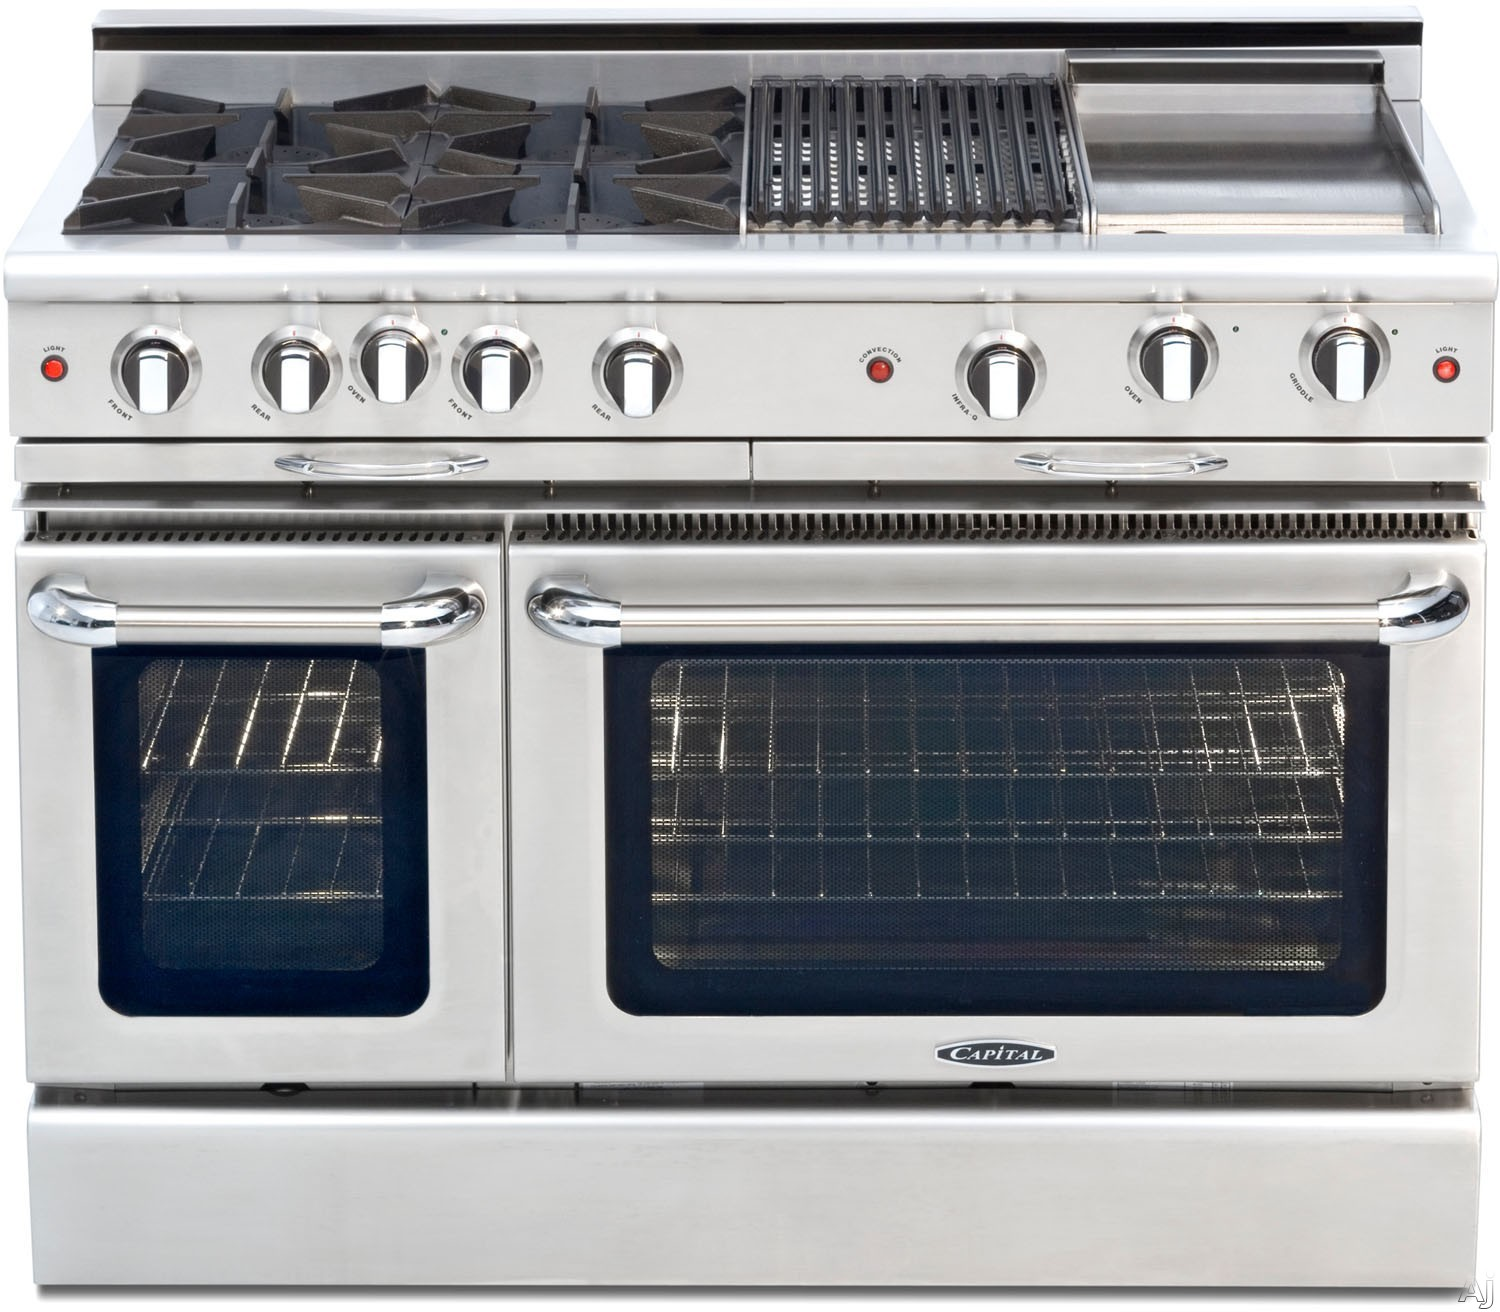 "Capital Culinarian Series CGSR484BB 48 Inch Pro-Style Gas Range with 4 Open Burners, Moto-Rotisâ""¢ Rotisserie, Stay-Coolâ""¢ Knobs, 24"""" BBQ Grill, EZ-Glidesâ""¢ Drip Trays, Self Clean, 4.6 cu. ft. Convection Oven and 2.1 cu. ft. Secondary Oven"" CGSR484BB"